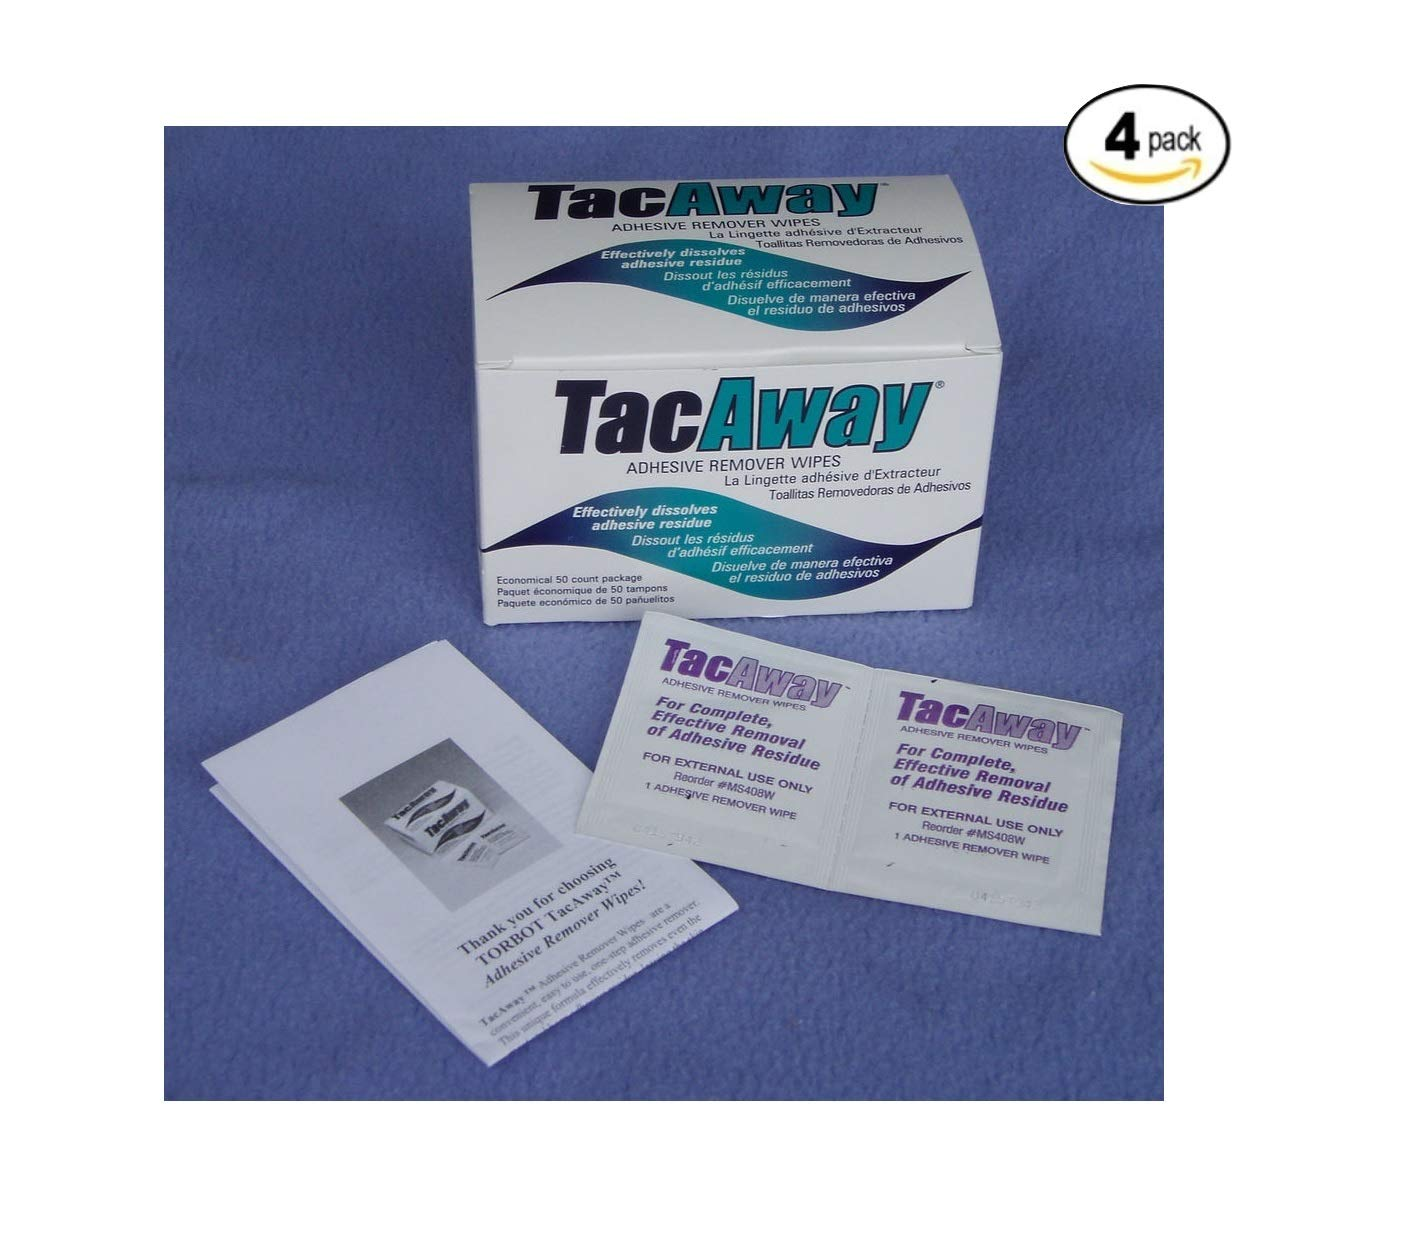 Skin-Tac-H Adhesive TacAway Remover Wipes, 50 count Torbot Group Inc. No Model